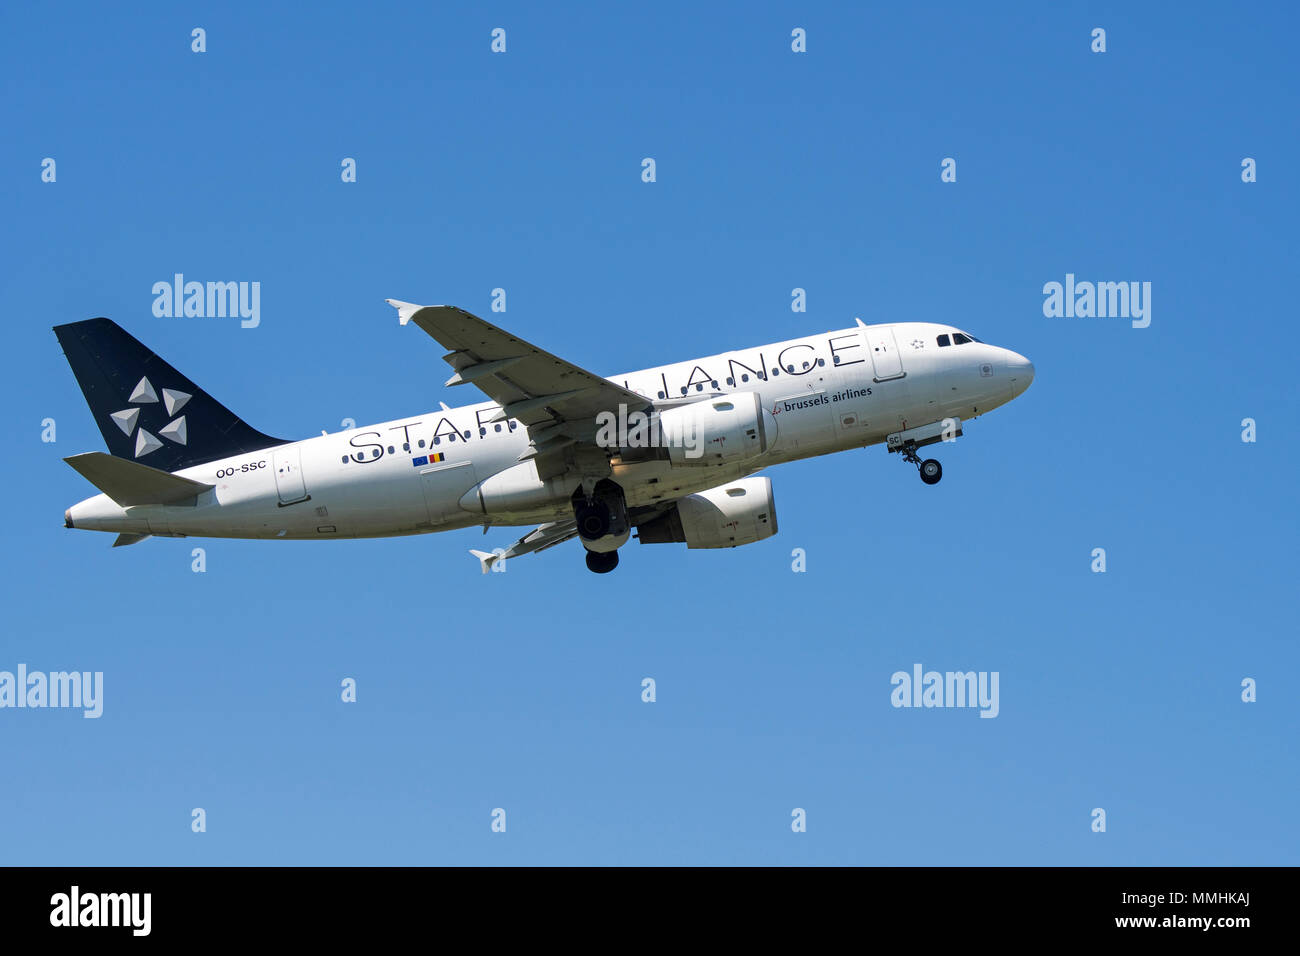 Airbus A319-112, narrow-body, commercial passenger twin-engine jet airliner from Belgian Brussels Airlines in flight against blue sky - Stock Image